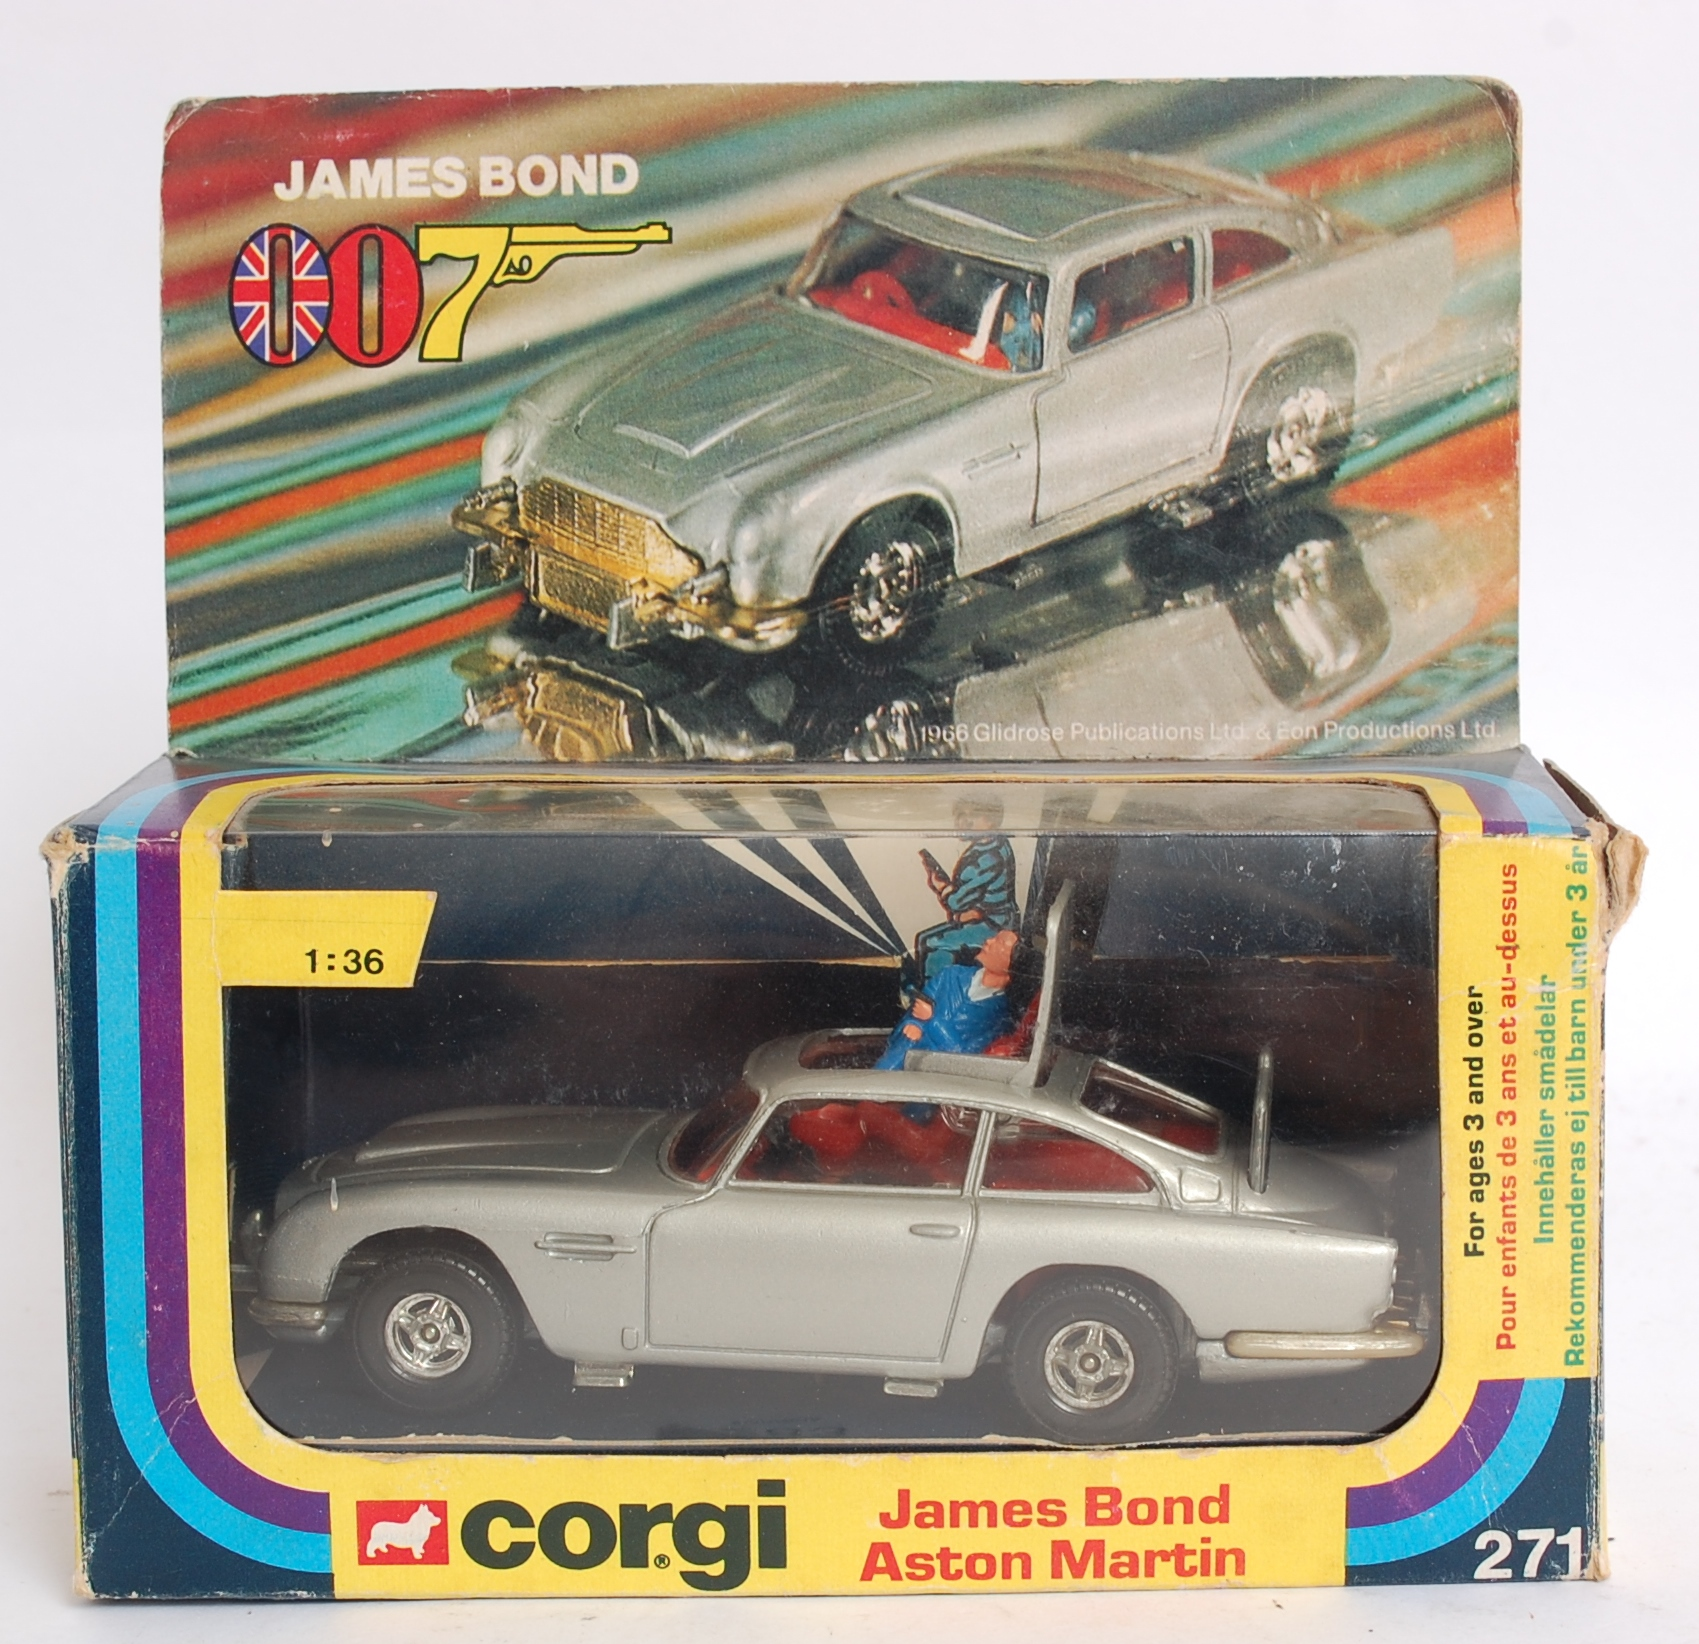 corgi james bond; an original corgi 271 james bond 007, aston